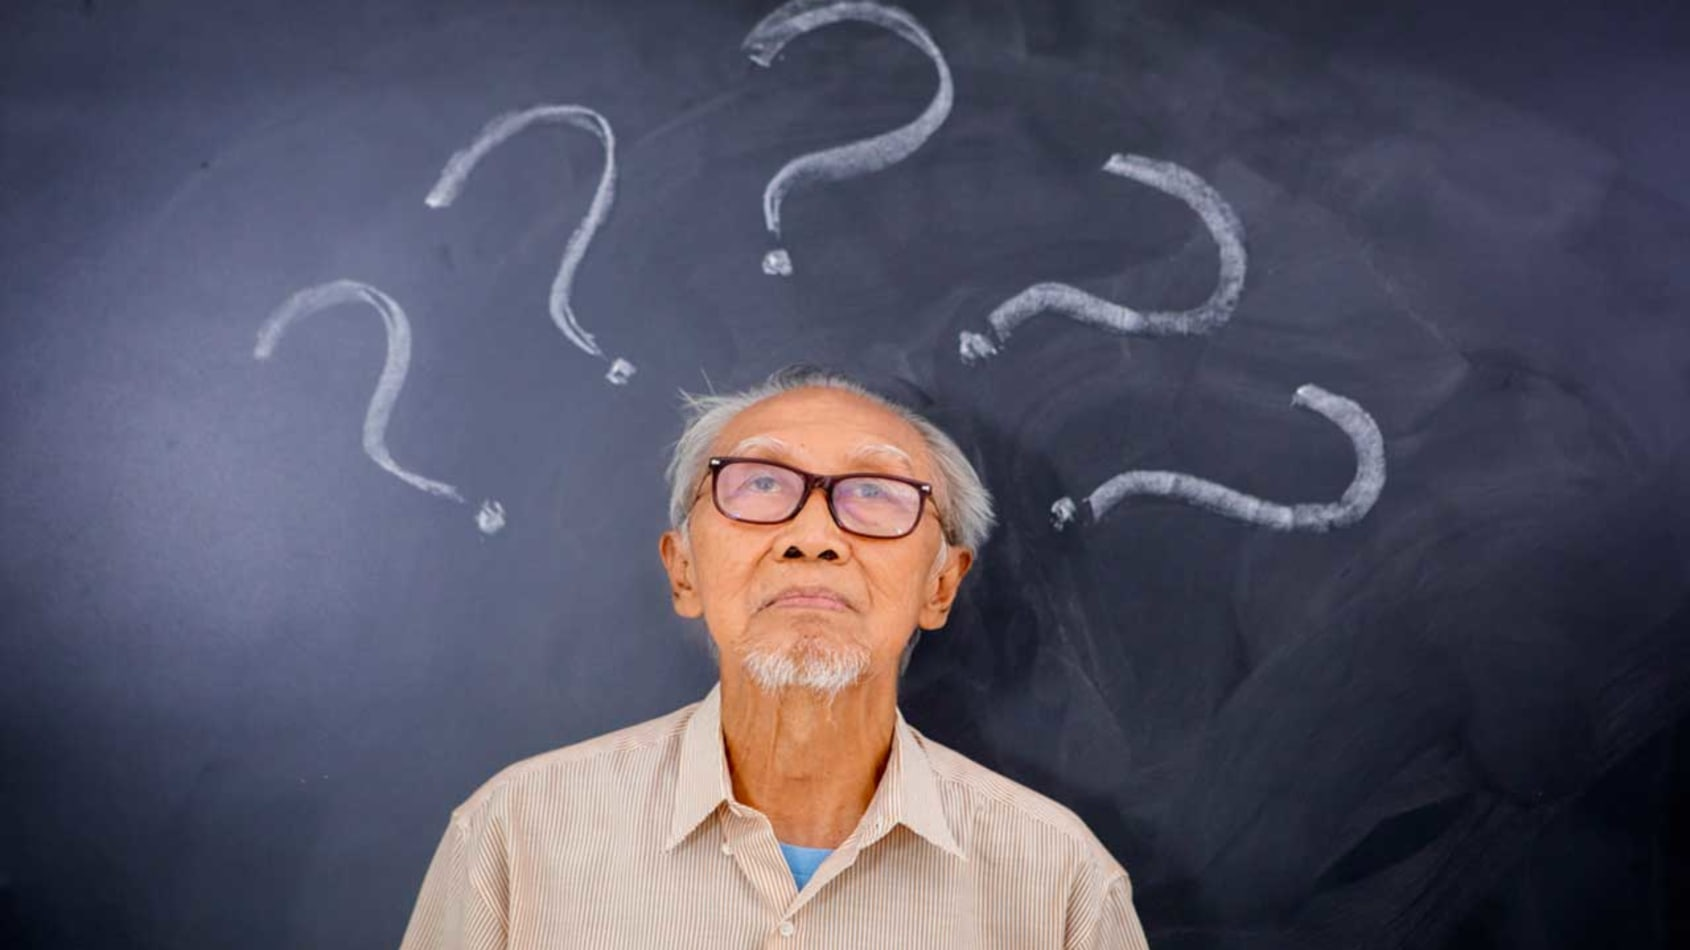 Senior man sitting in front of a blackboard with question marks surrounding his head.